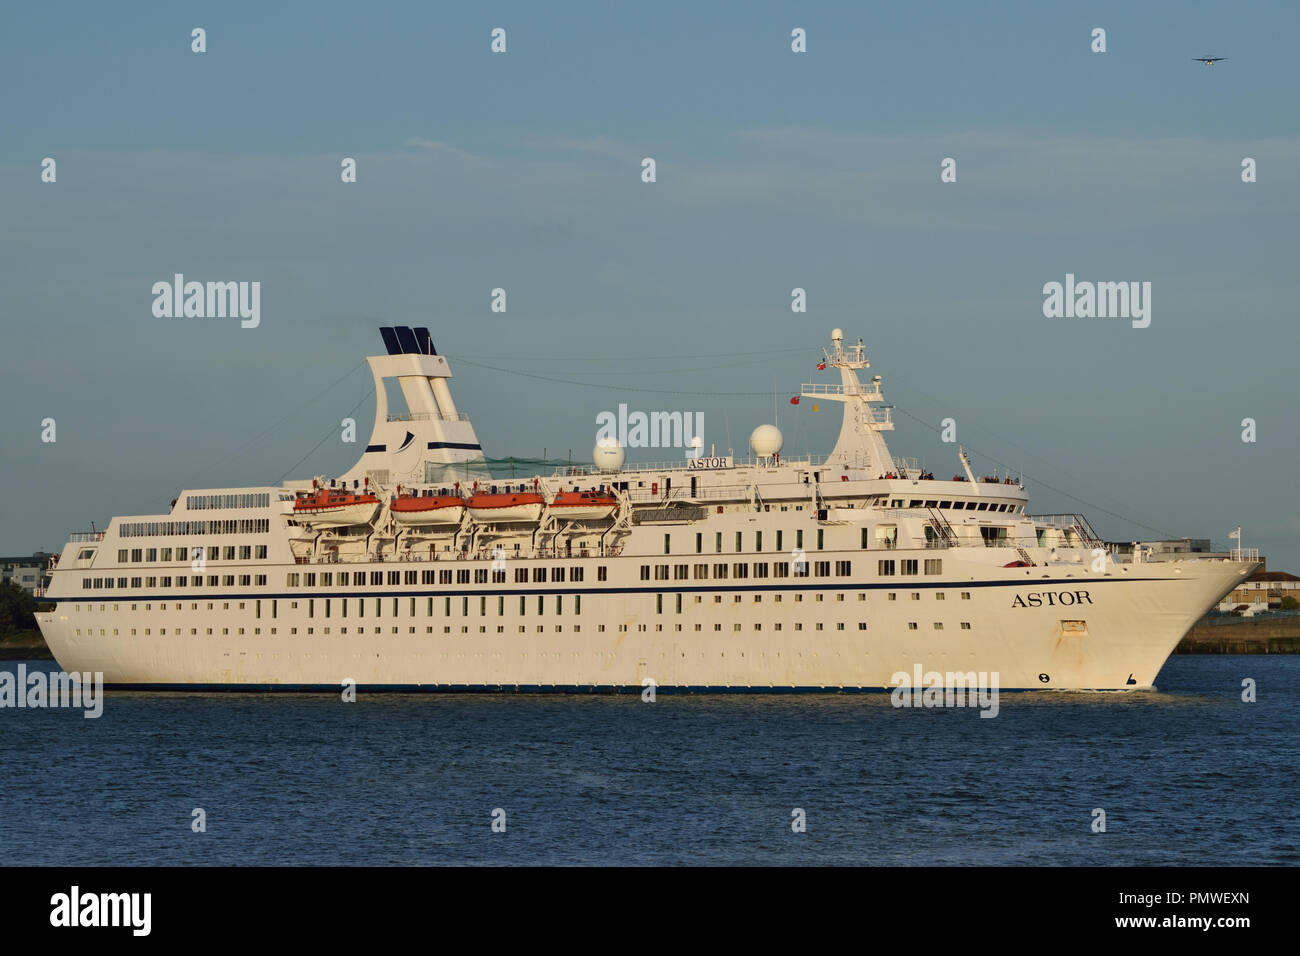 Cruise Ship Astor heads up the River Thames to London in the late afternoon sunshine - Stock Image